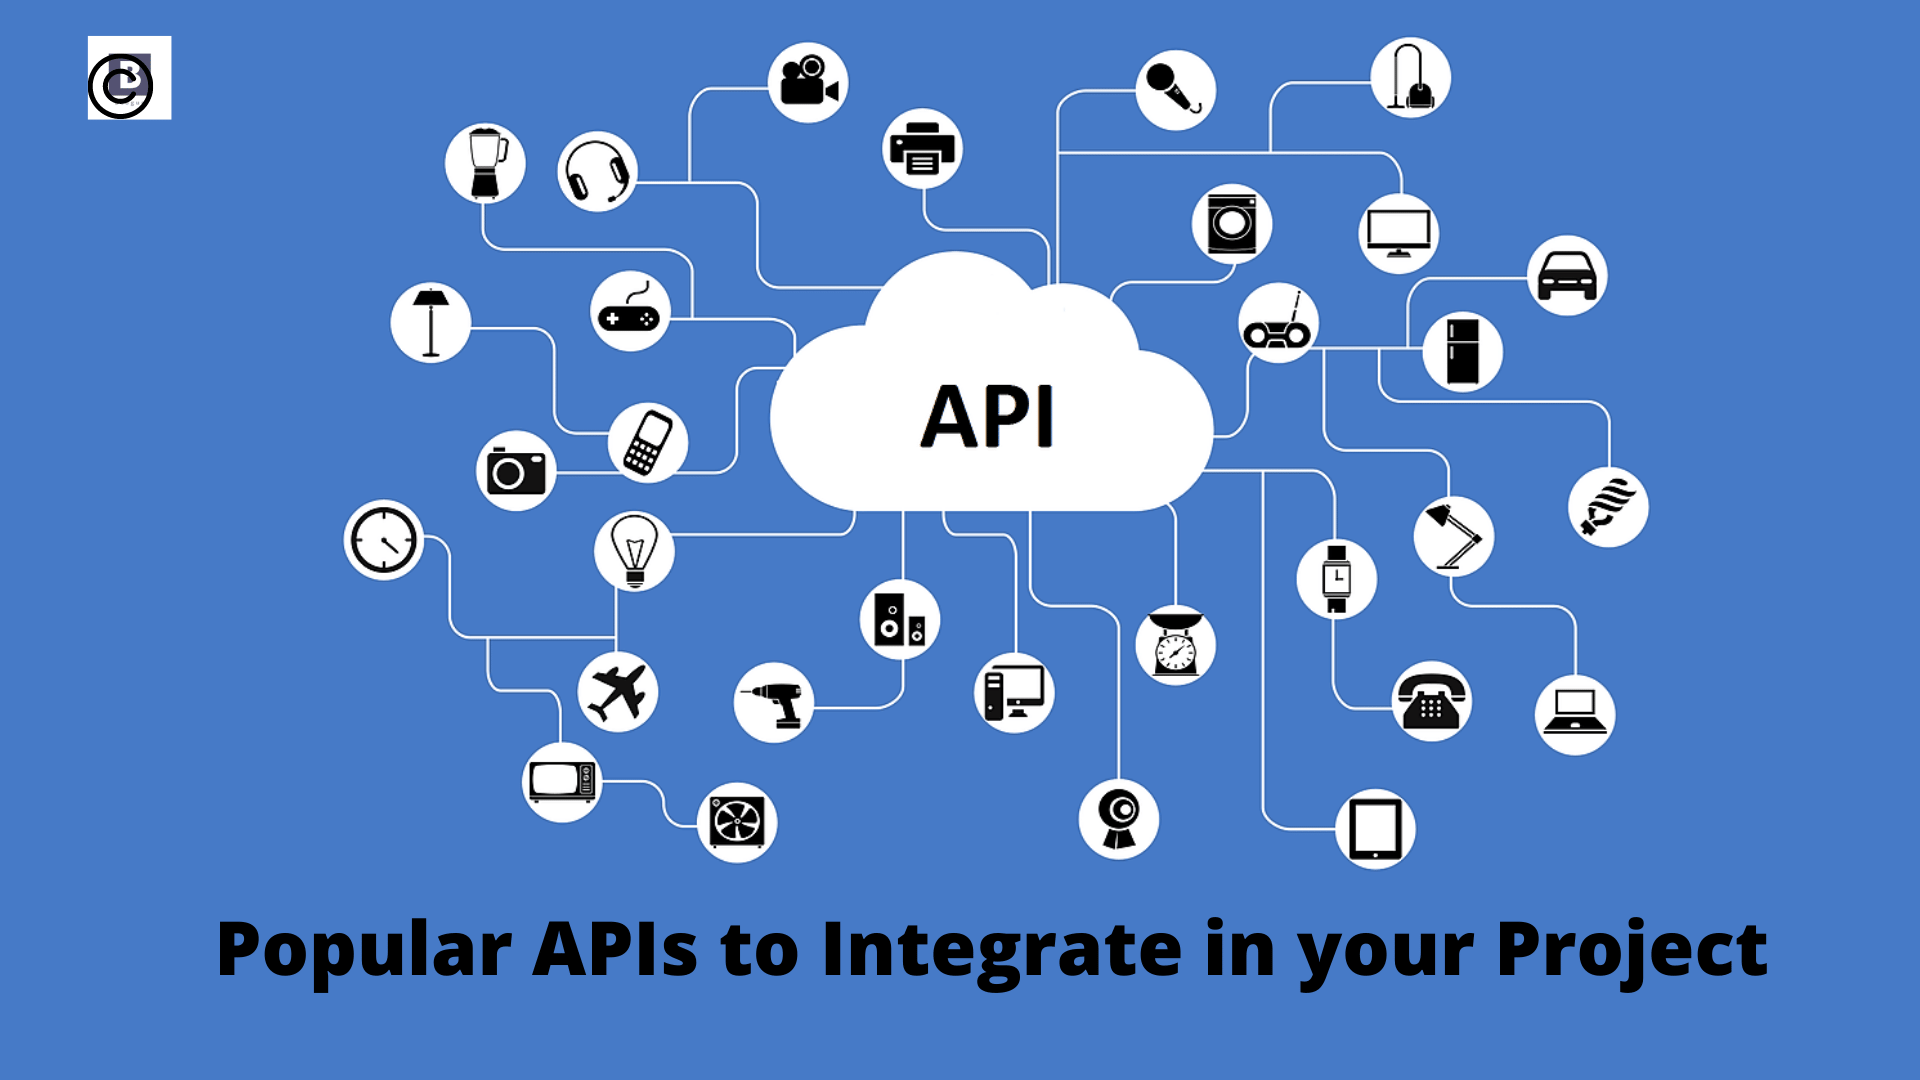 Popular APIs to Integrate in your Project